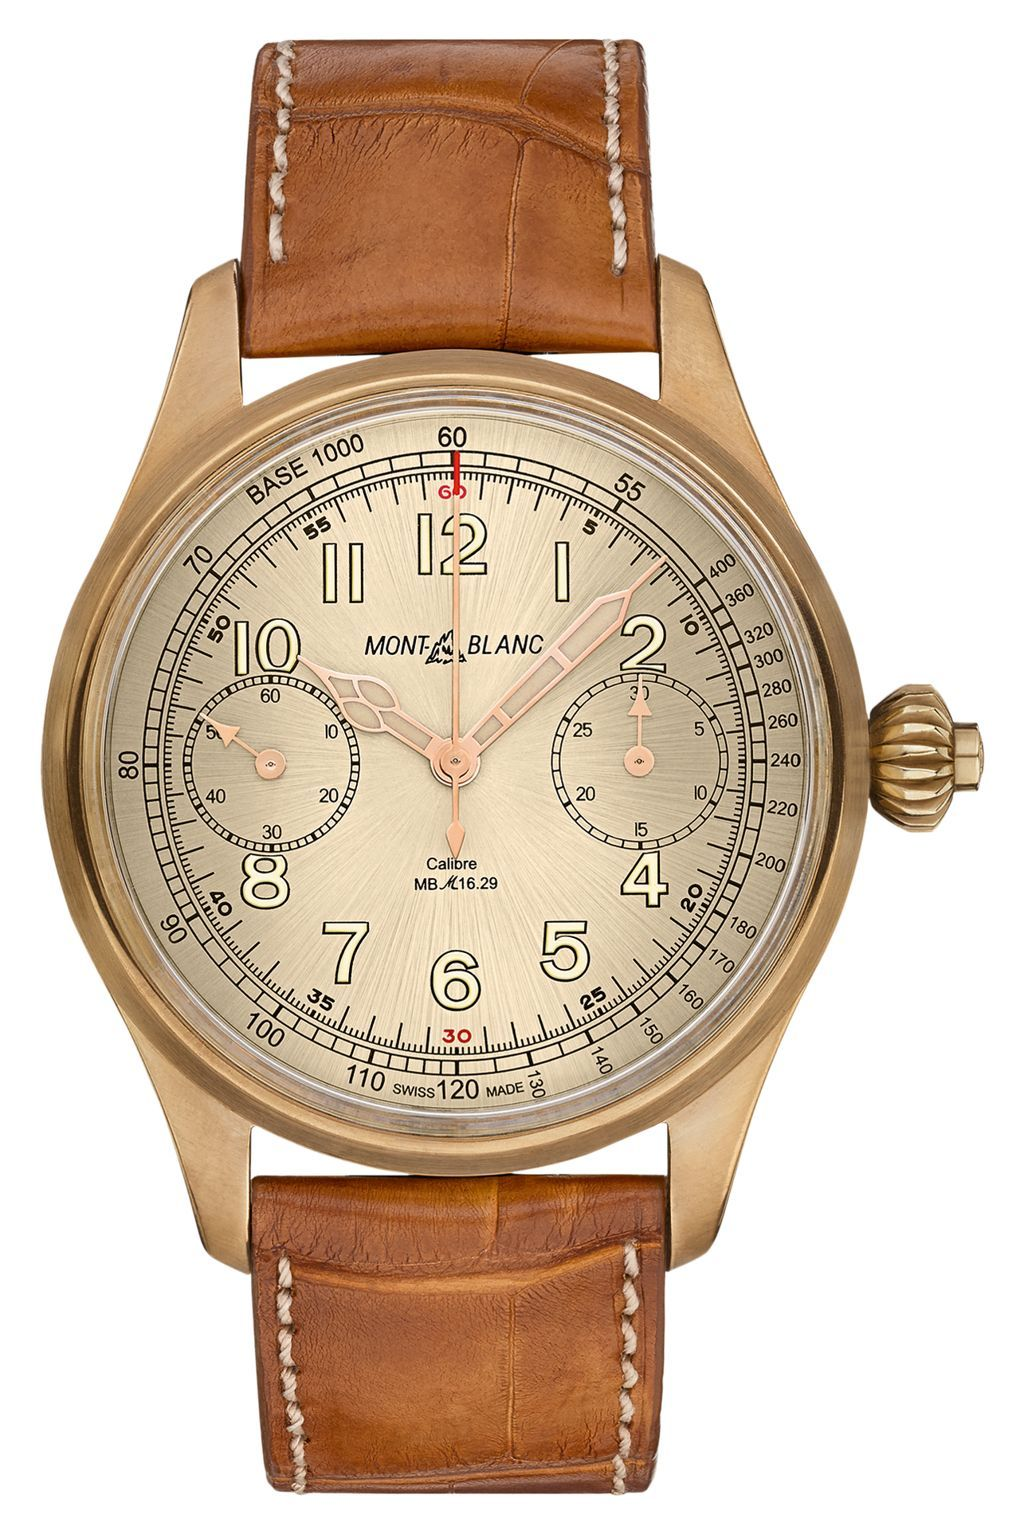 Watch The Top Men's Watches Trends For 2019 video